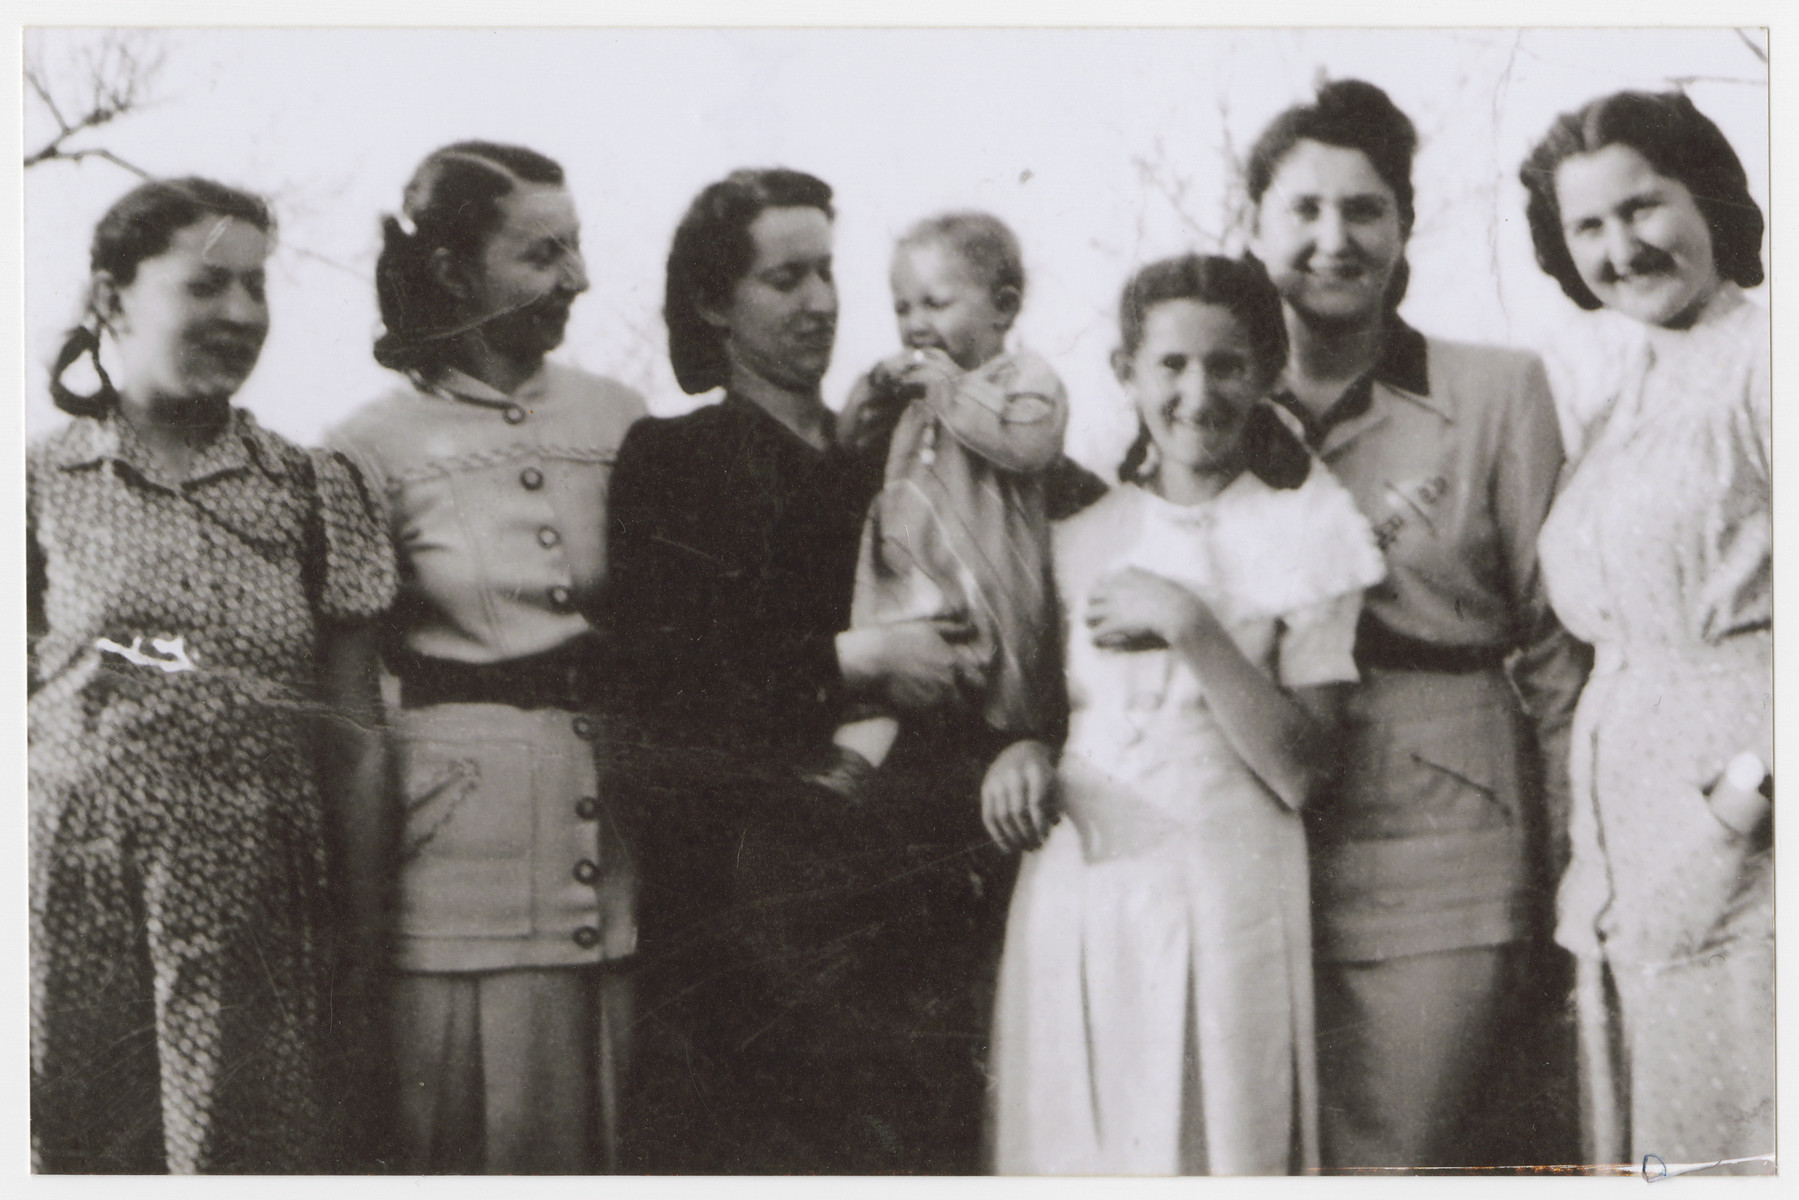 Group portrait of the Seelfreund sisters: Clara, Elizabeth, Maragaret, her daughter Suzanne, Violet, Anna, and Gisela..